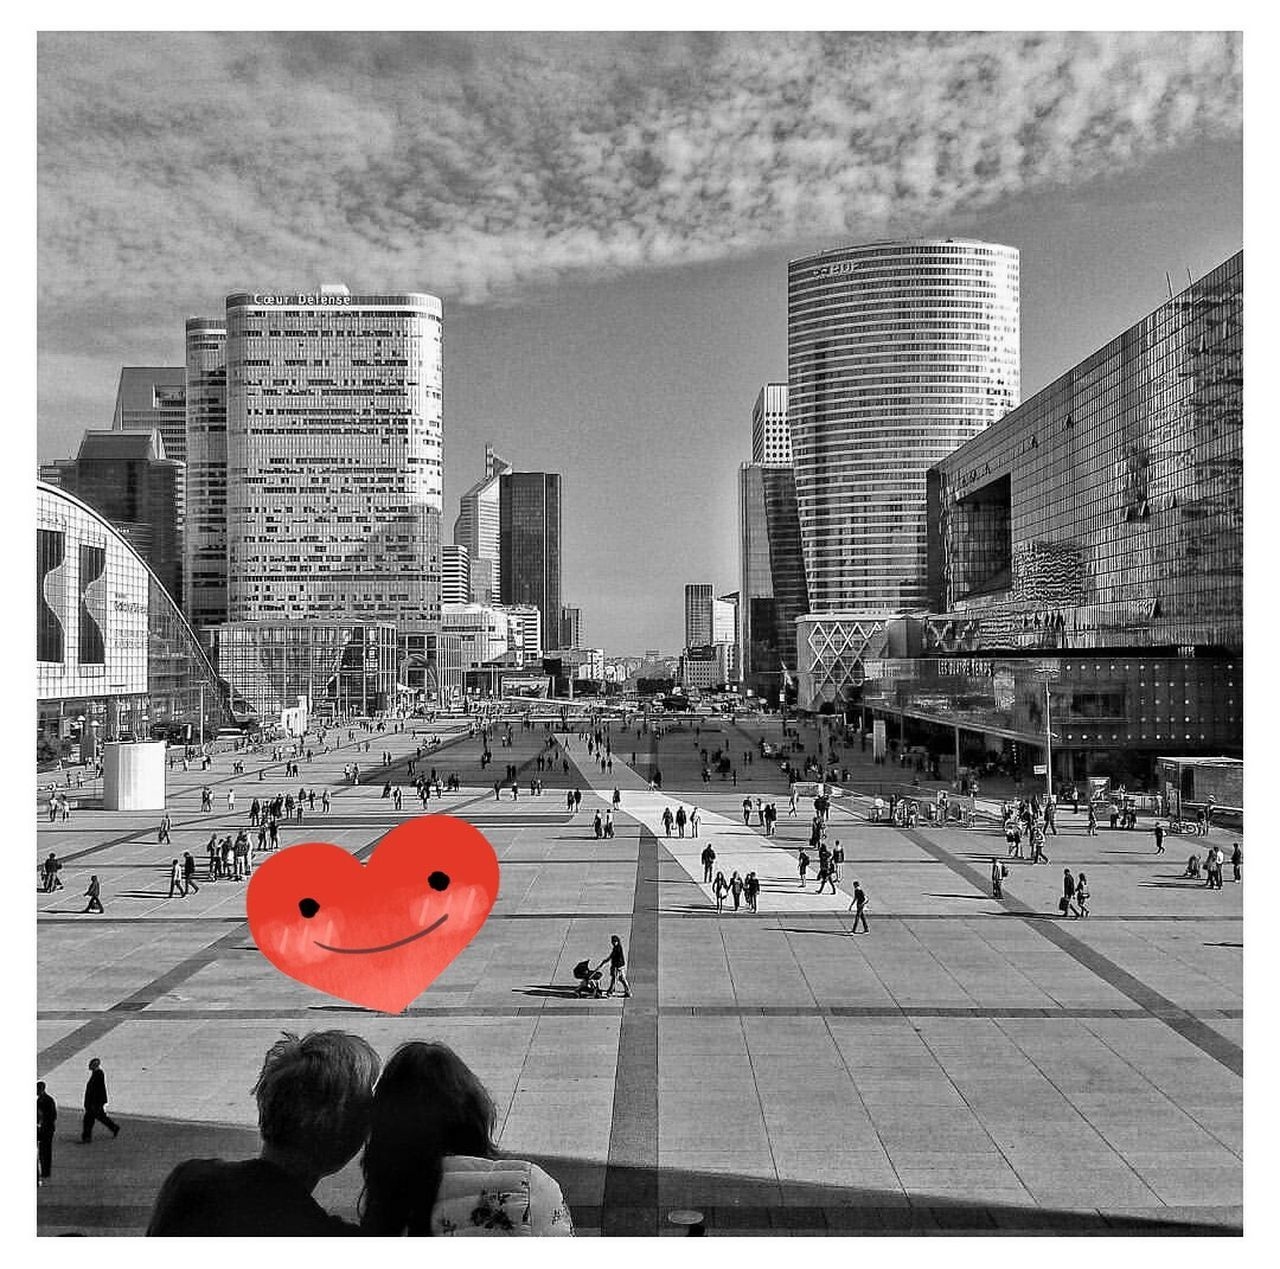 Grande Arche De La Défense City Skyscraper Architecture People City Life Urban Skyline Love ♥ Instantcapture Cityscape France Ladefense Lovely SaintValentin StValentines Stvalentinesday